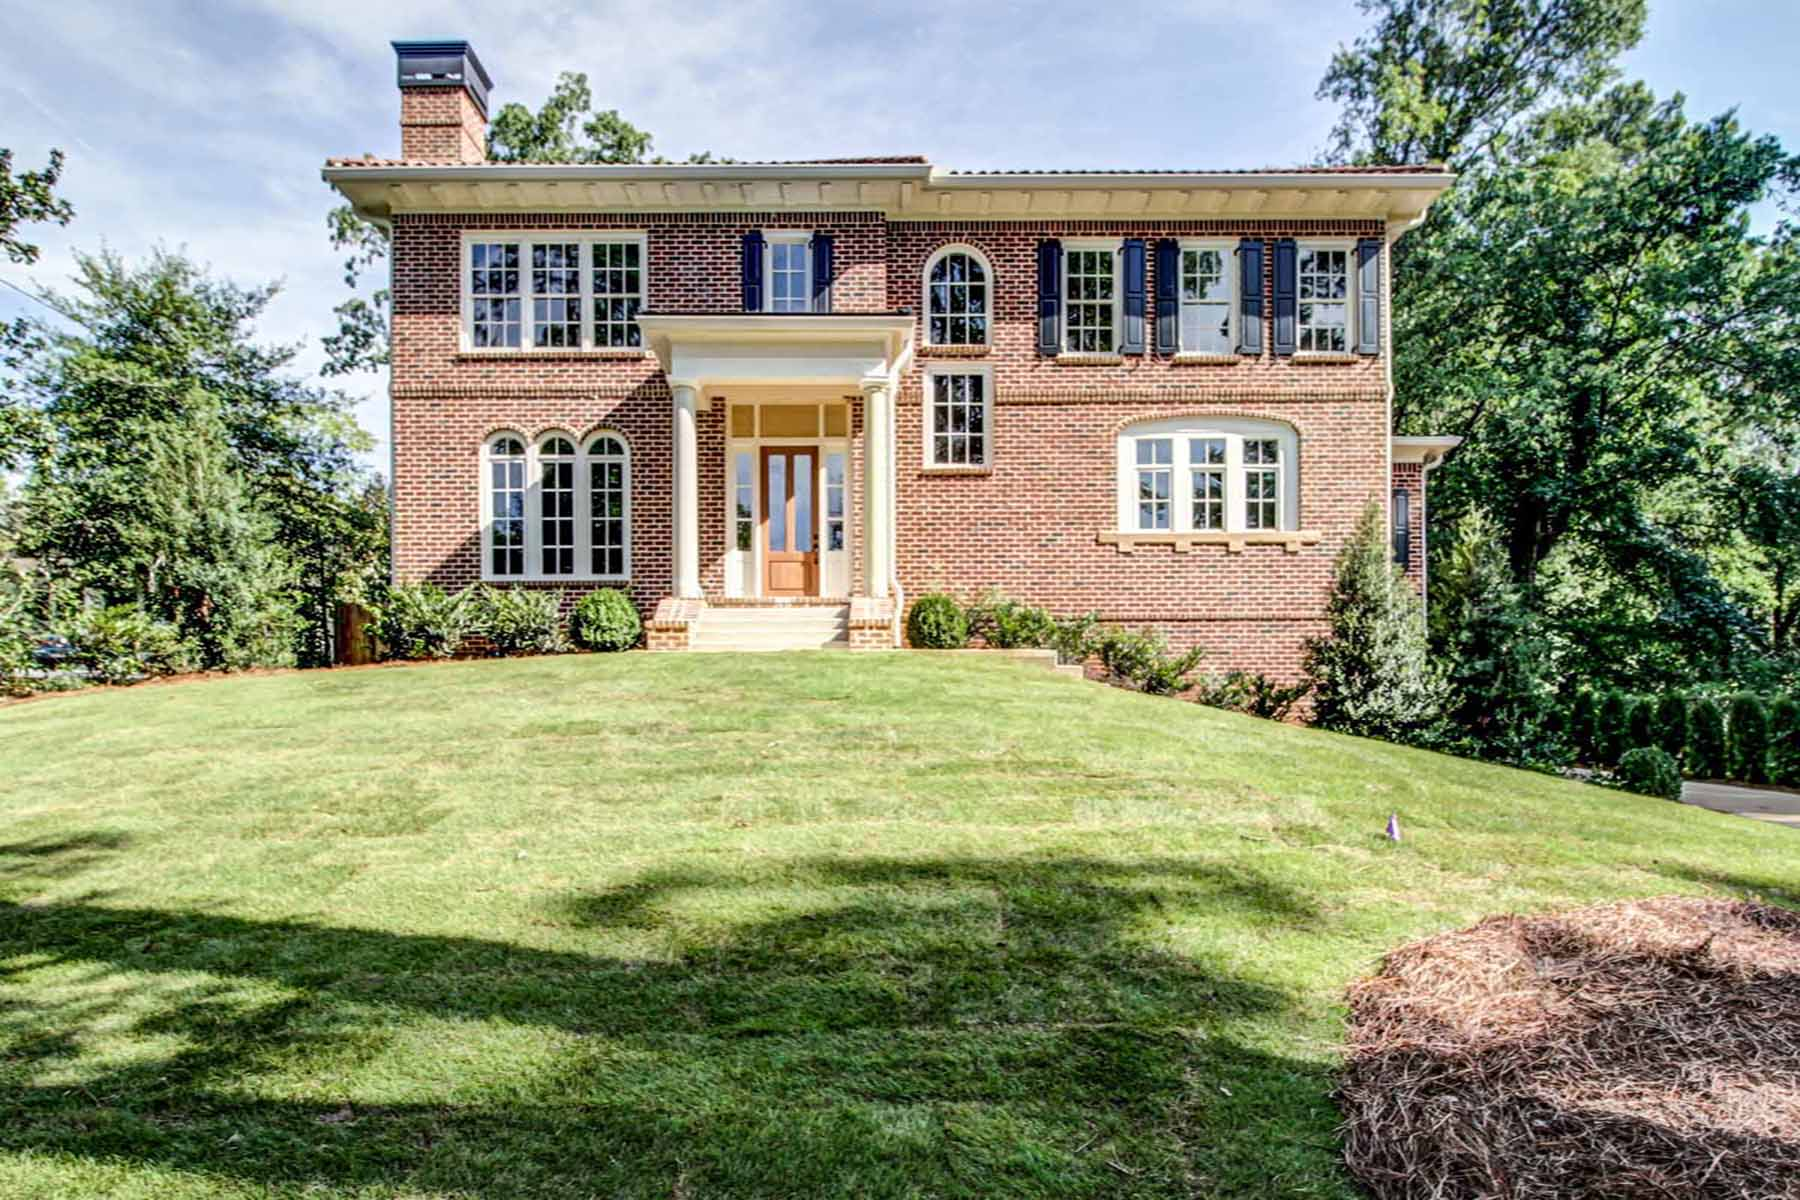 Single Family Home for Sale at Live the life of Urbane Sophistication, Newly Custom Designed and Built 1512 N Decatur Road NE Druid Hills, Atlanta, Georgia, 30307 United States